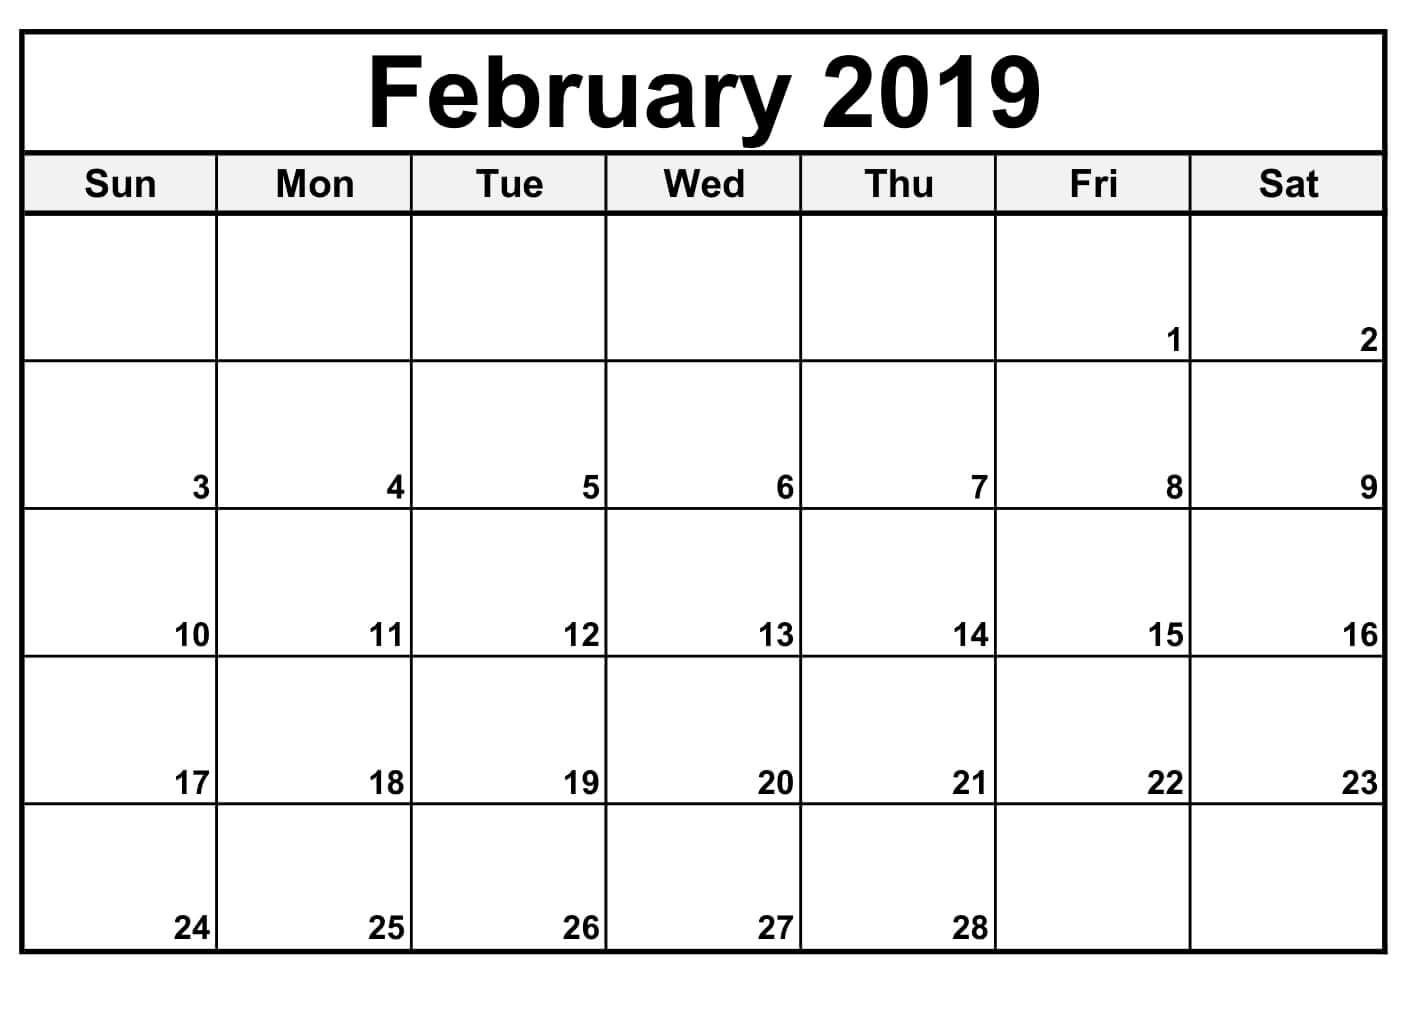 Calendars To Print February 2019 With Lines February 2019 Calendar Editable | Free Printable February 2019